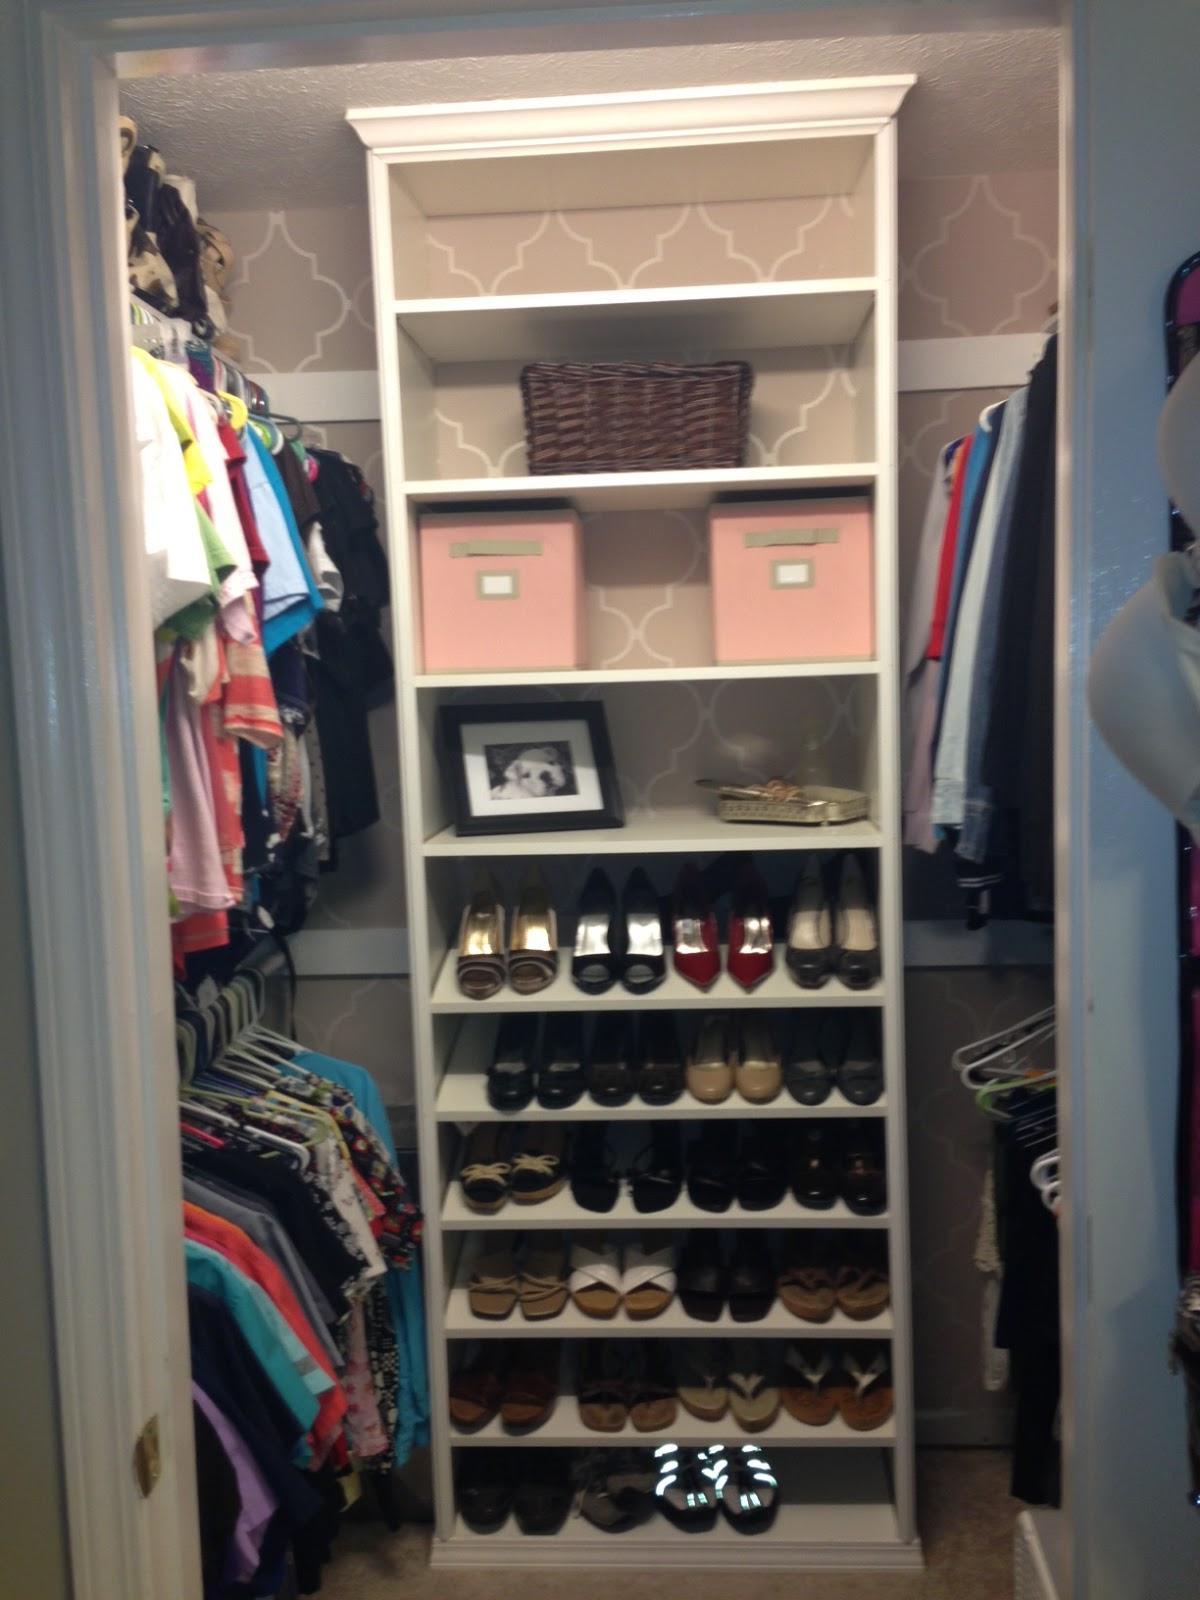 Designing A Closet Diy Cool Diy Closet System Ideas For Organized People Elly 39s